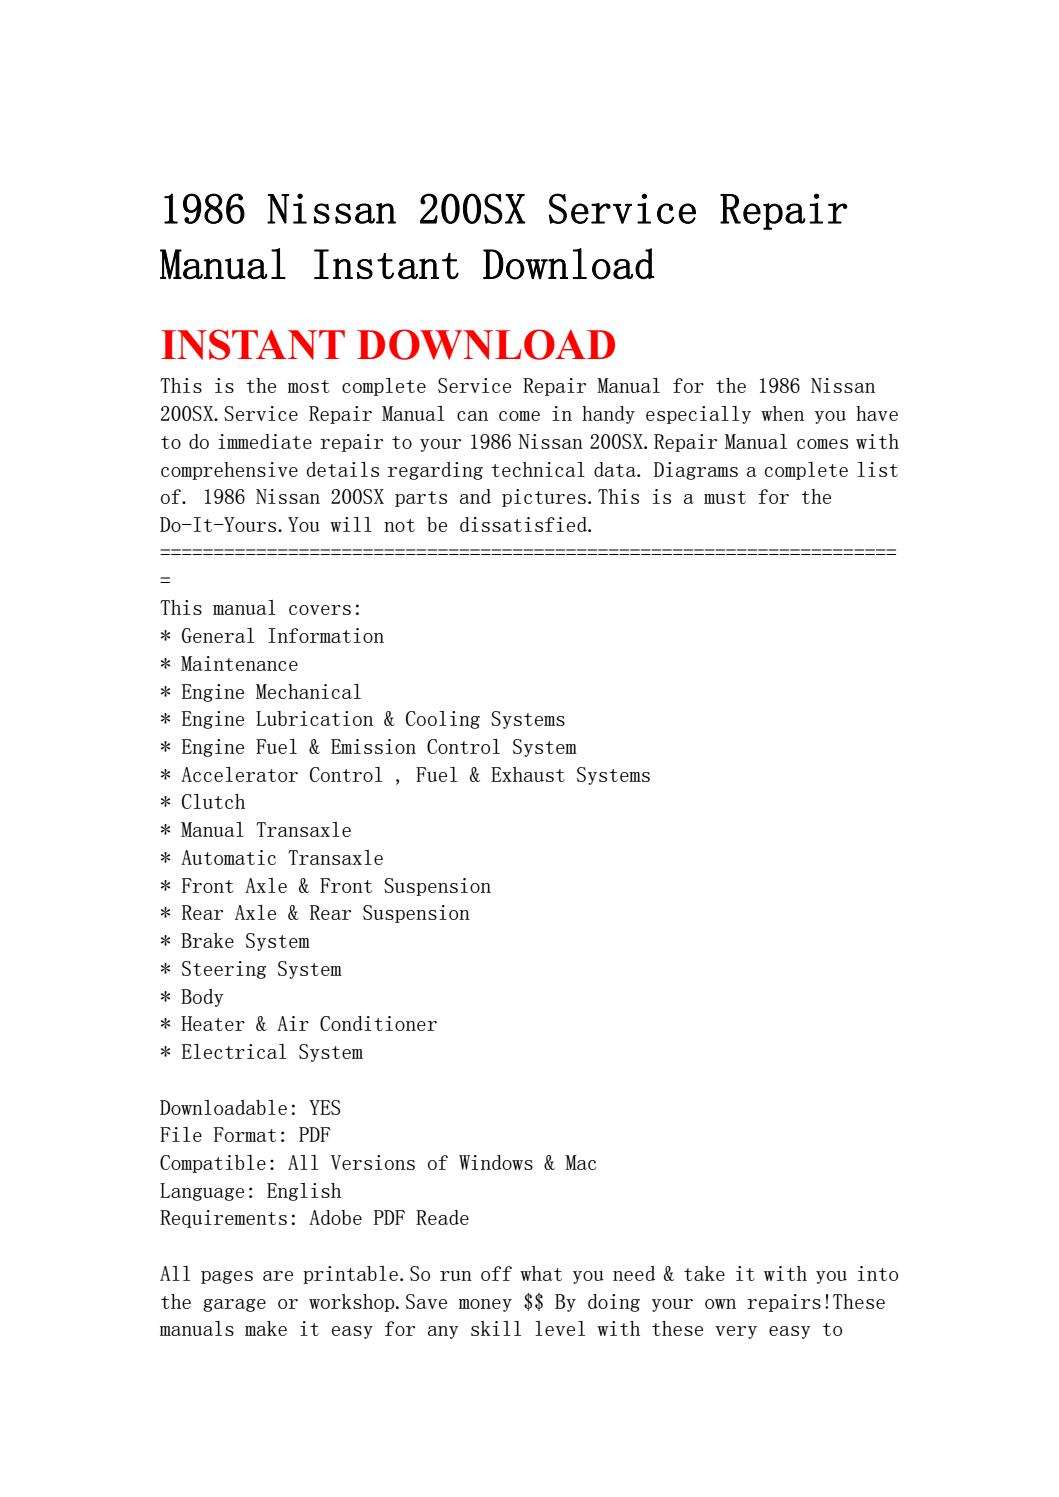 1986 Nissan 200sx Service Repair Manual Instant Download By Jhsenfuh Issuu